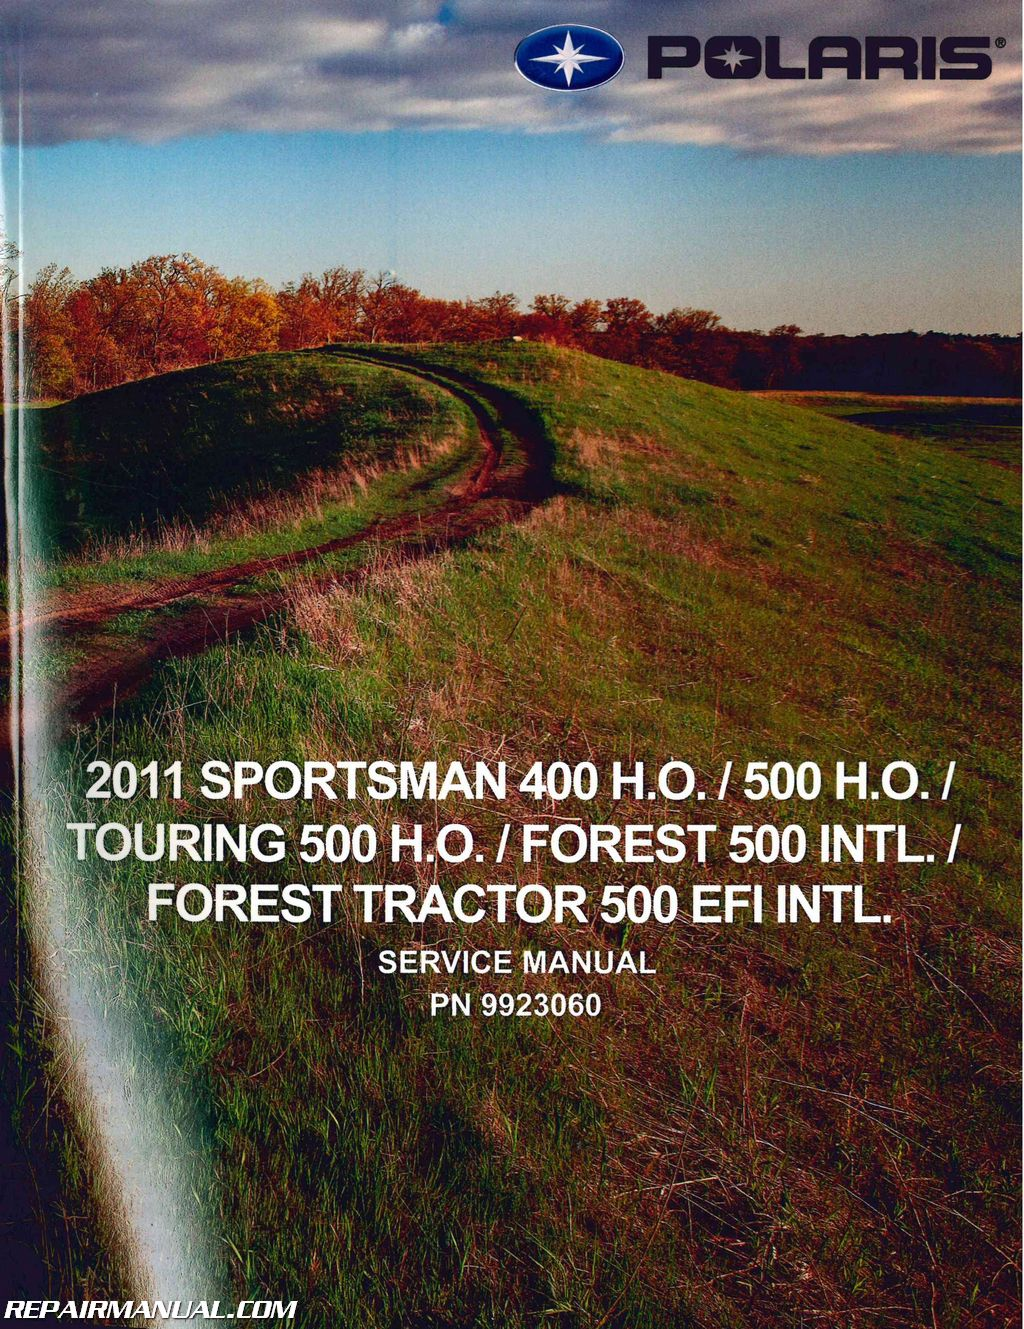 2007 Polaris Sportsman 500 Adc Wiring Diagram Electrical Work 400 2011 Hawkeye 2x4 Atv Service Manual Rh Repairmanual Com 1999 335